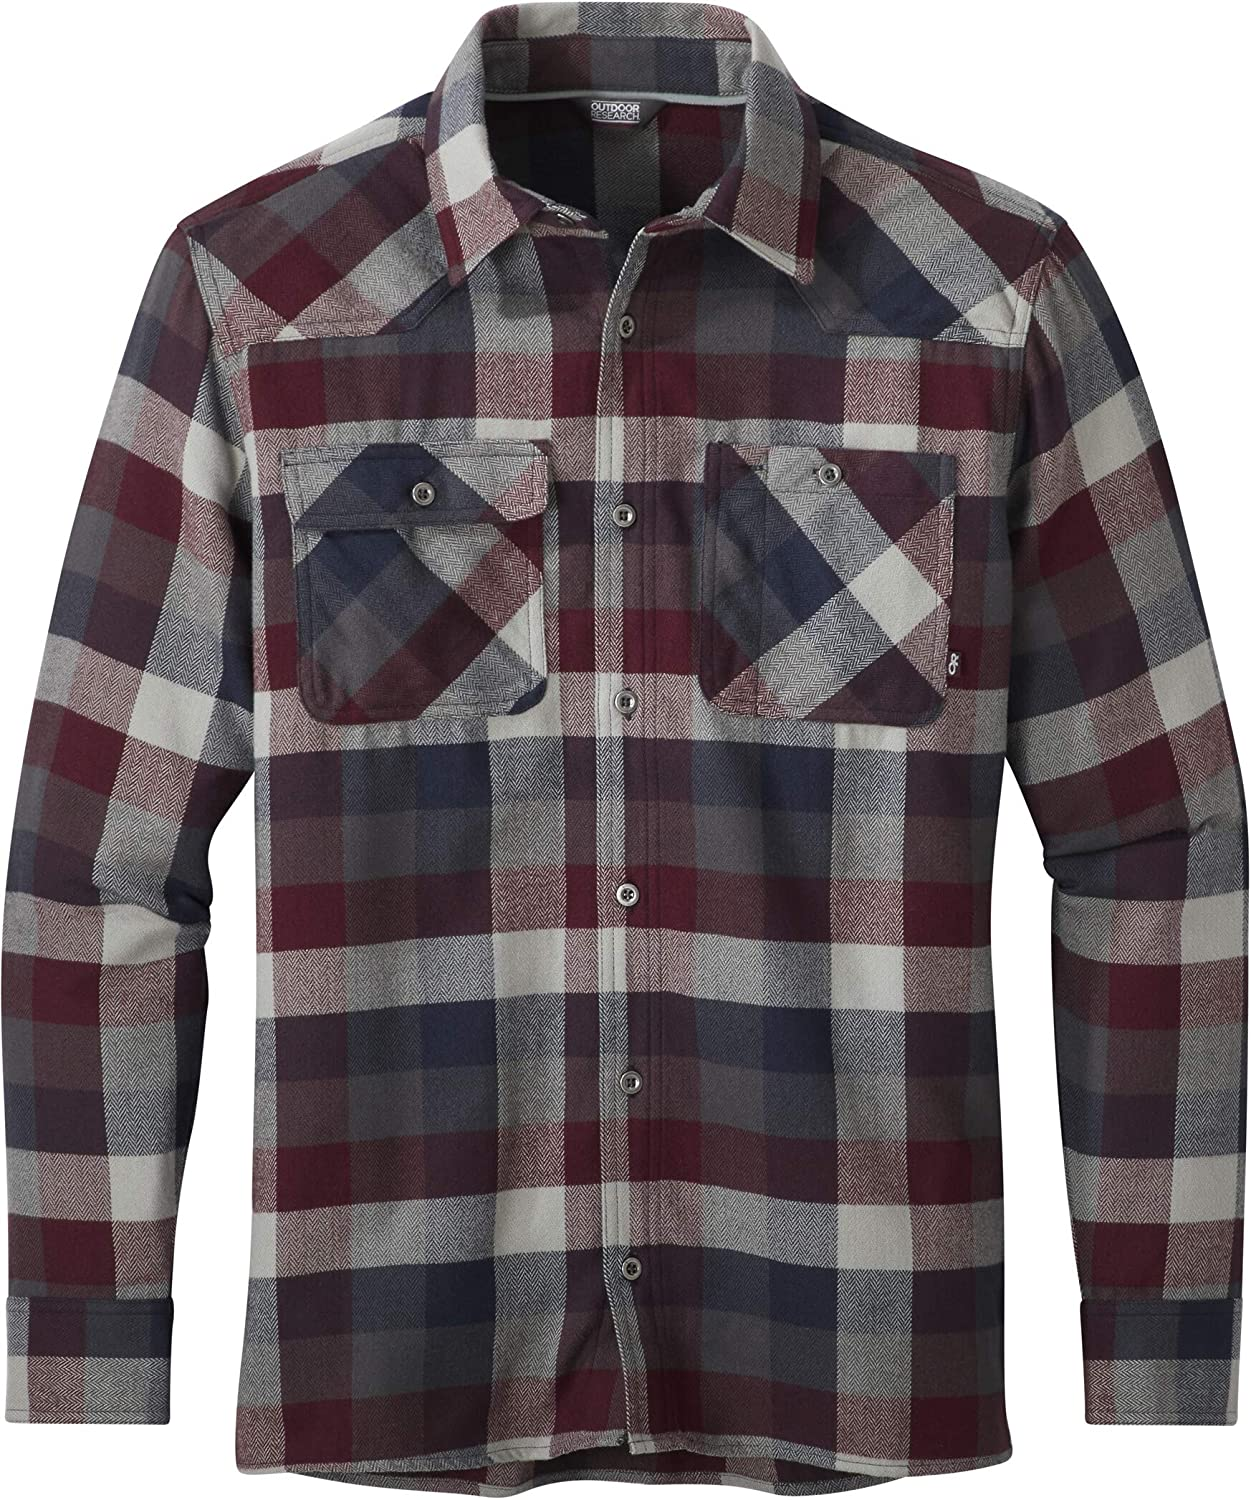 Outdoor Research Or Ranking TOP17 men's shirt Max 45% OFF flannel feedback